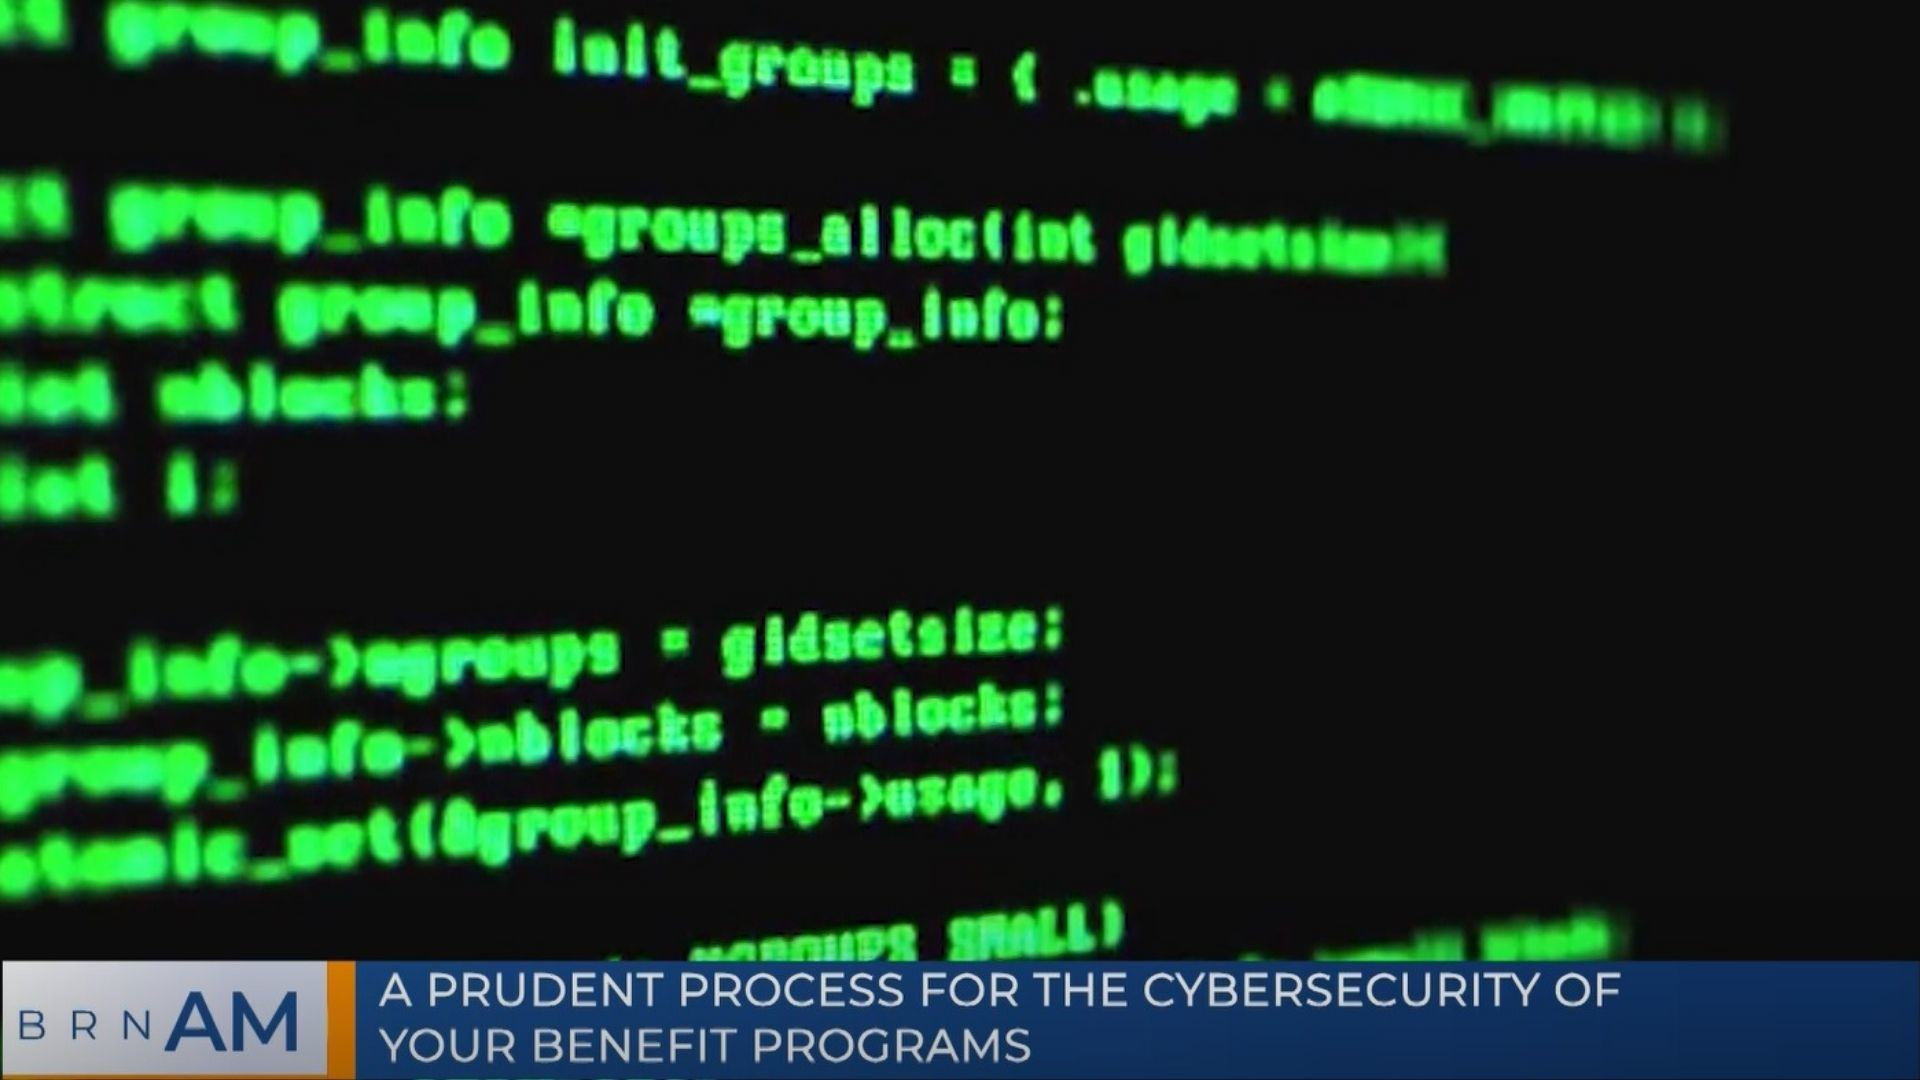 BRN AM | A prudent process for the cybersecurity of your benefit programs